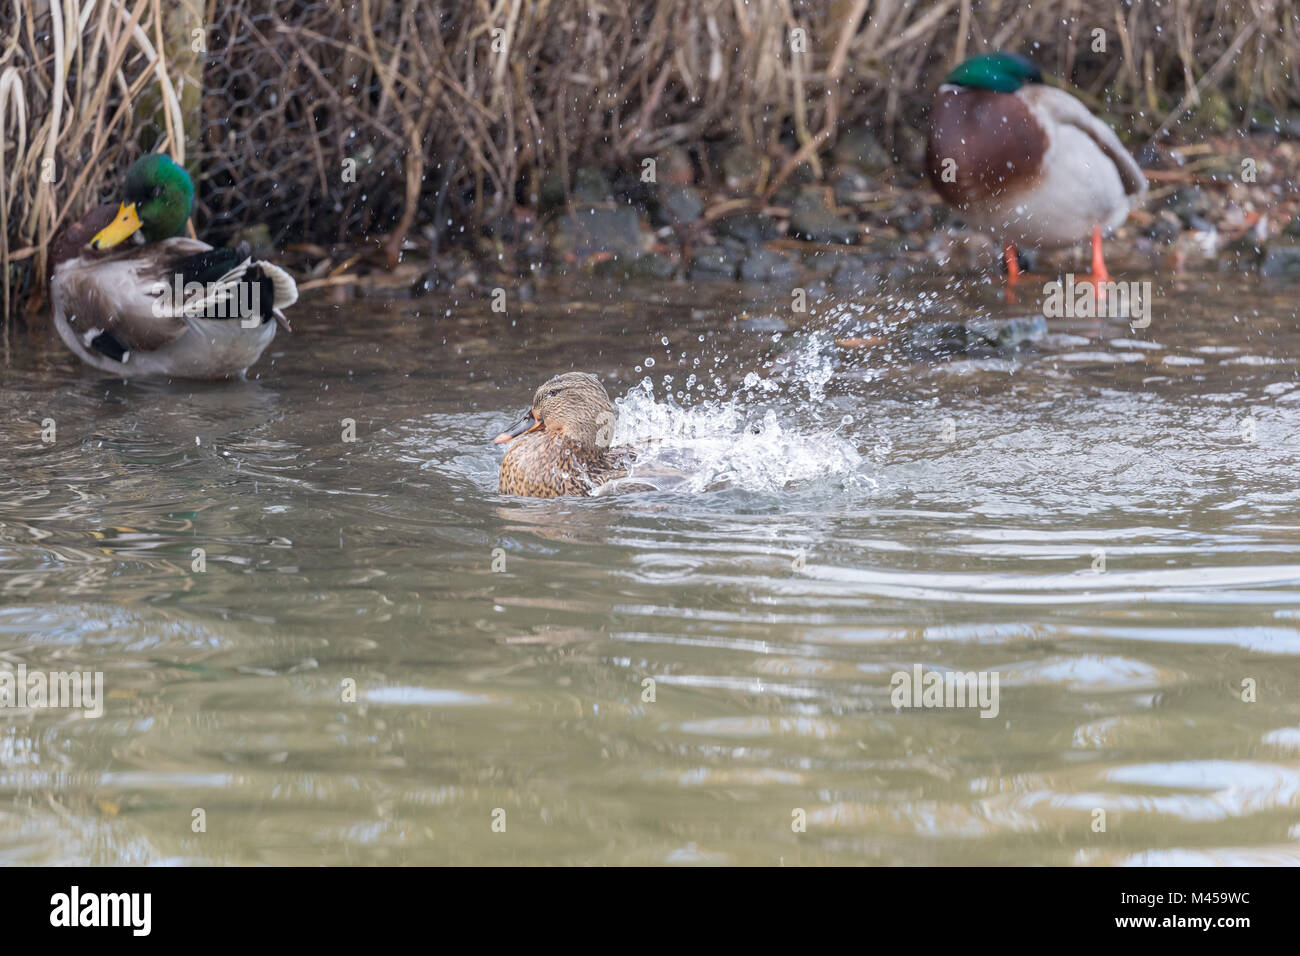 Female mallard (Anas platyrhynchos) splashing in water with two drakes in the background. Stock Photo